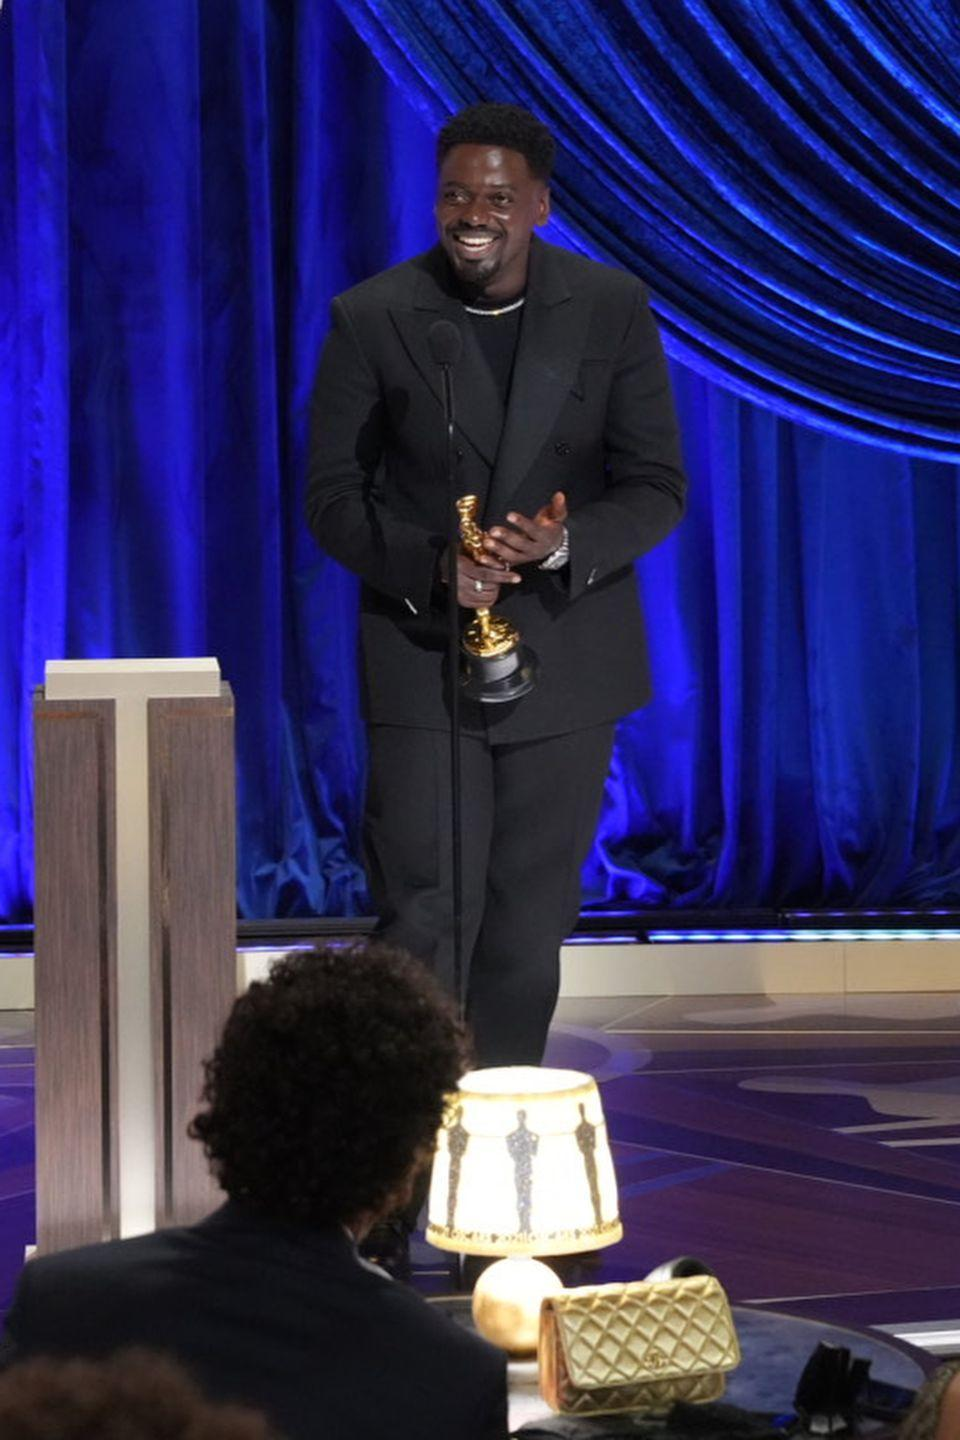 """<p>During the ceremony, the British star <a href=""""https://www.elle.com/uk/life-and-culture/culture/a36222860/daniel-kaluuya-oscar-speech/"""" rel=""""nofollow noopener"""" target=""""_blank"""" data-ylk=""""slk:won the award"""" class=""""link rapid-noclick-resp"""">won the award</a> for Best Supporting Actor for his role in Judas and the Black Messiah and delivered the most hilarious speech. </p><p>'My mum and my dad...they had sex. It's amazing! I'm here!' he said at the end of the speech, much to his mother's embarrassment who was seen looking pretty shocked while watching the ceremony via a video link in London. </p>"""